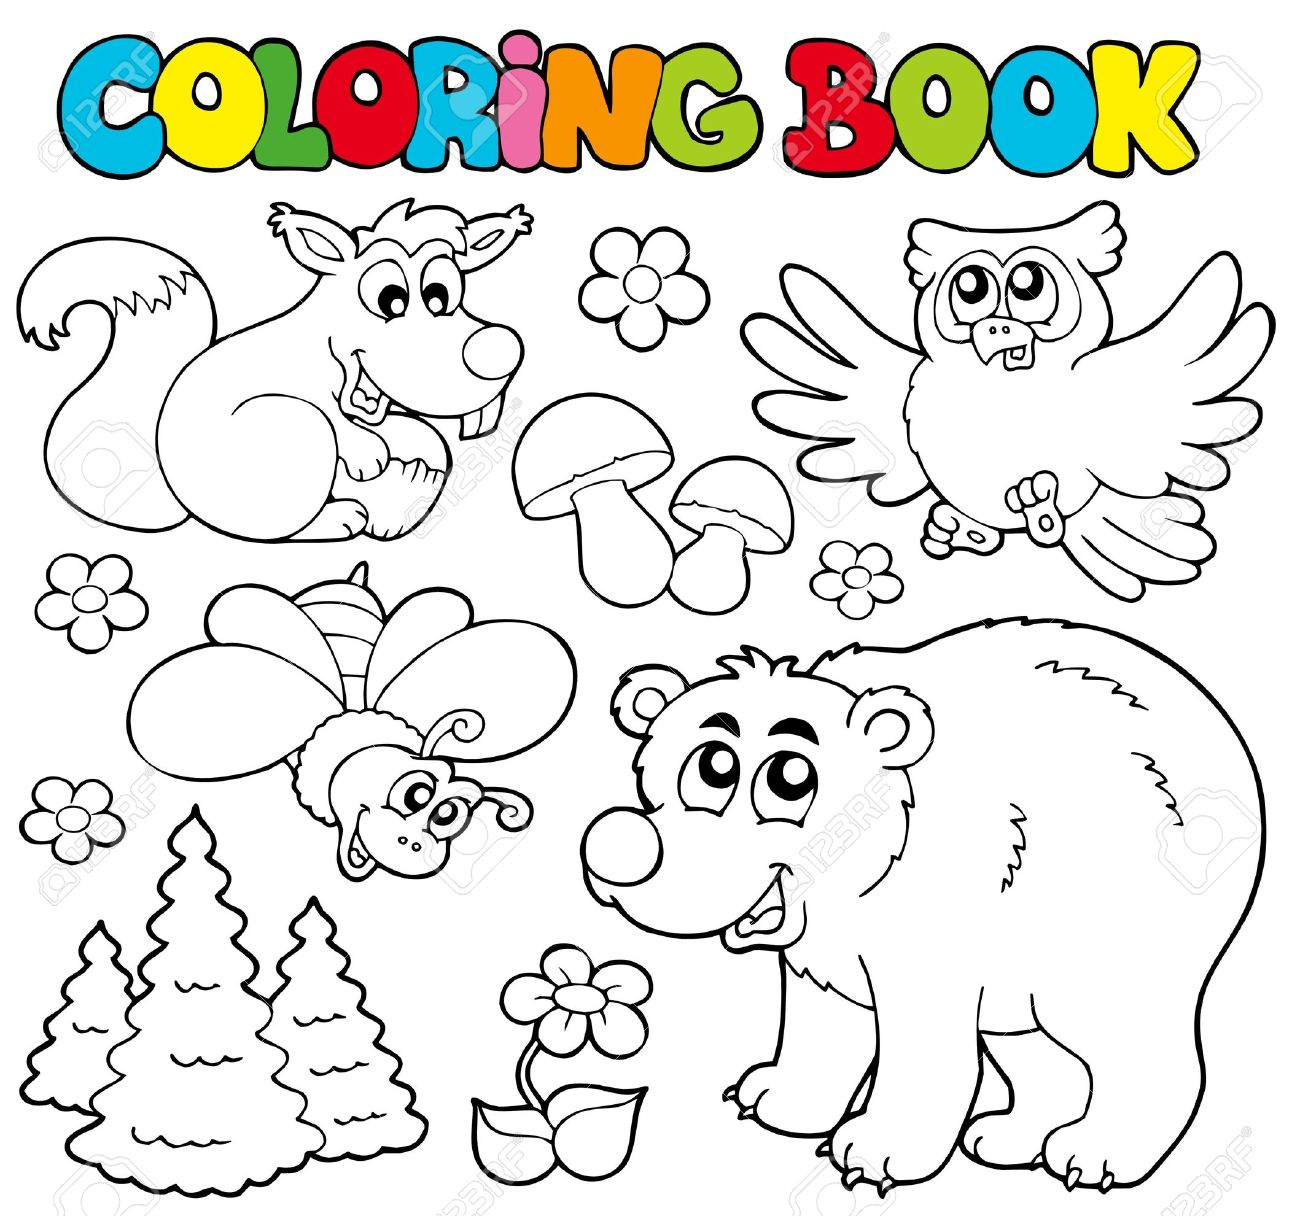 coloring book with forest animals illustration royalty free